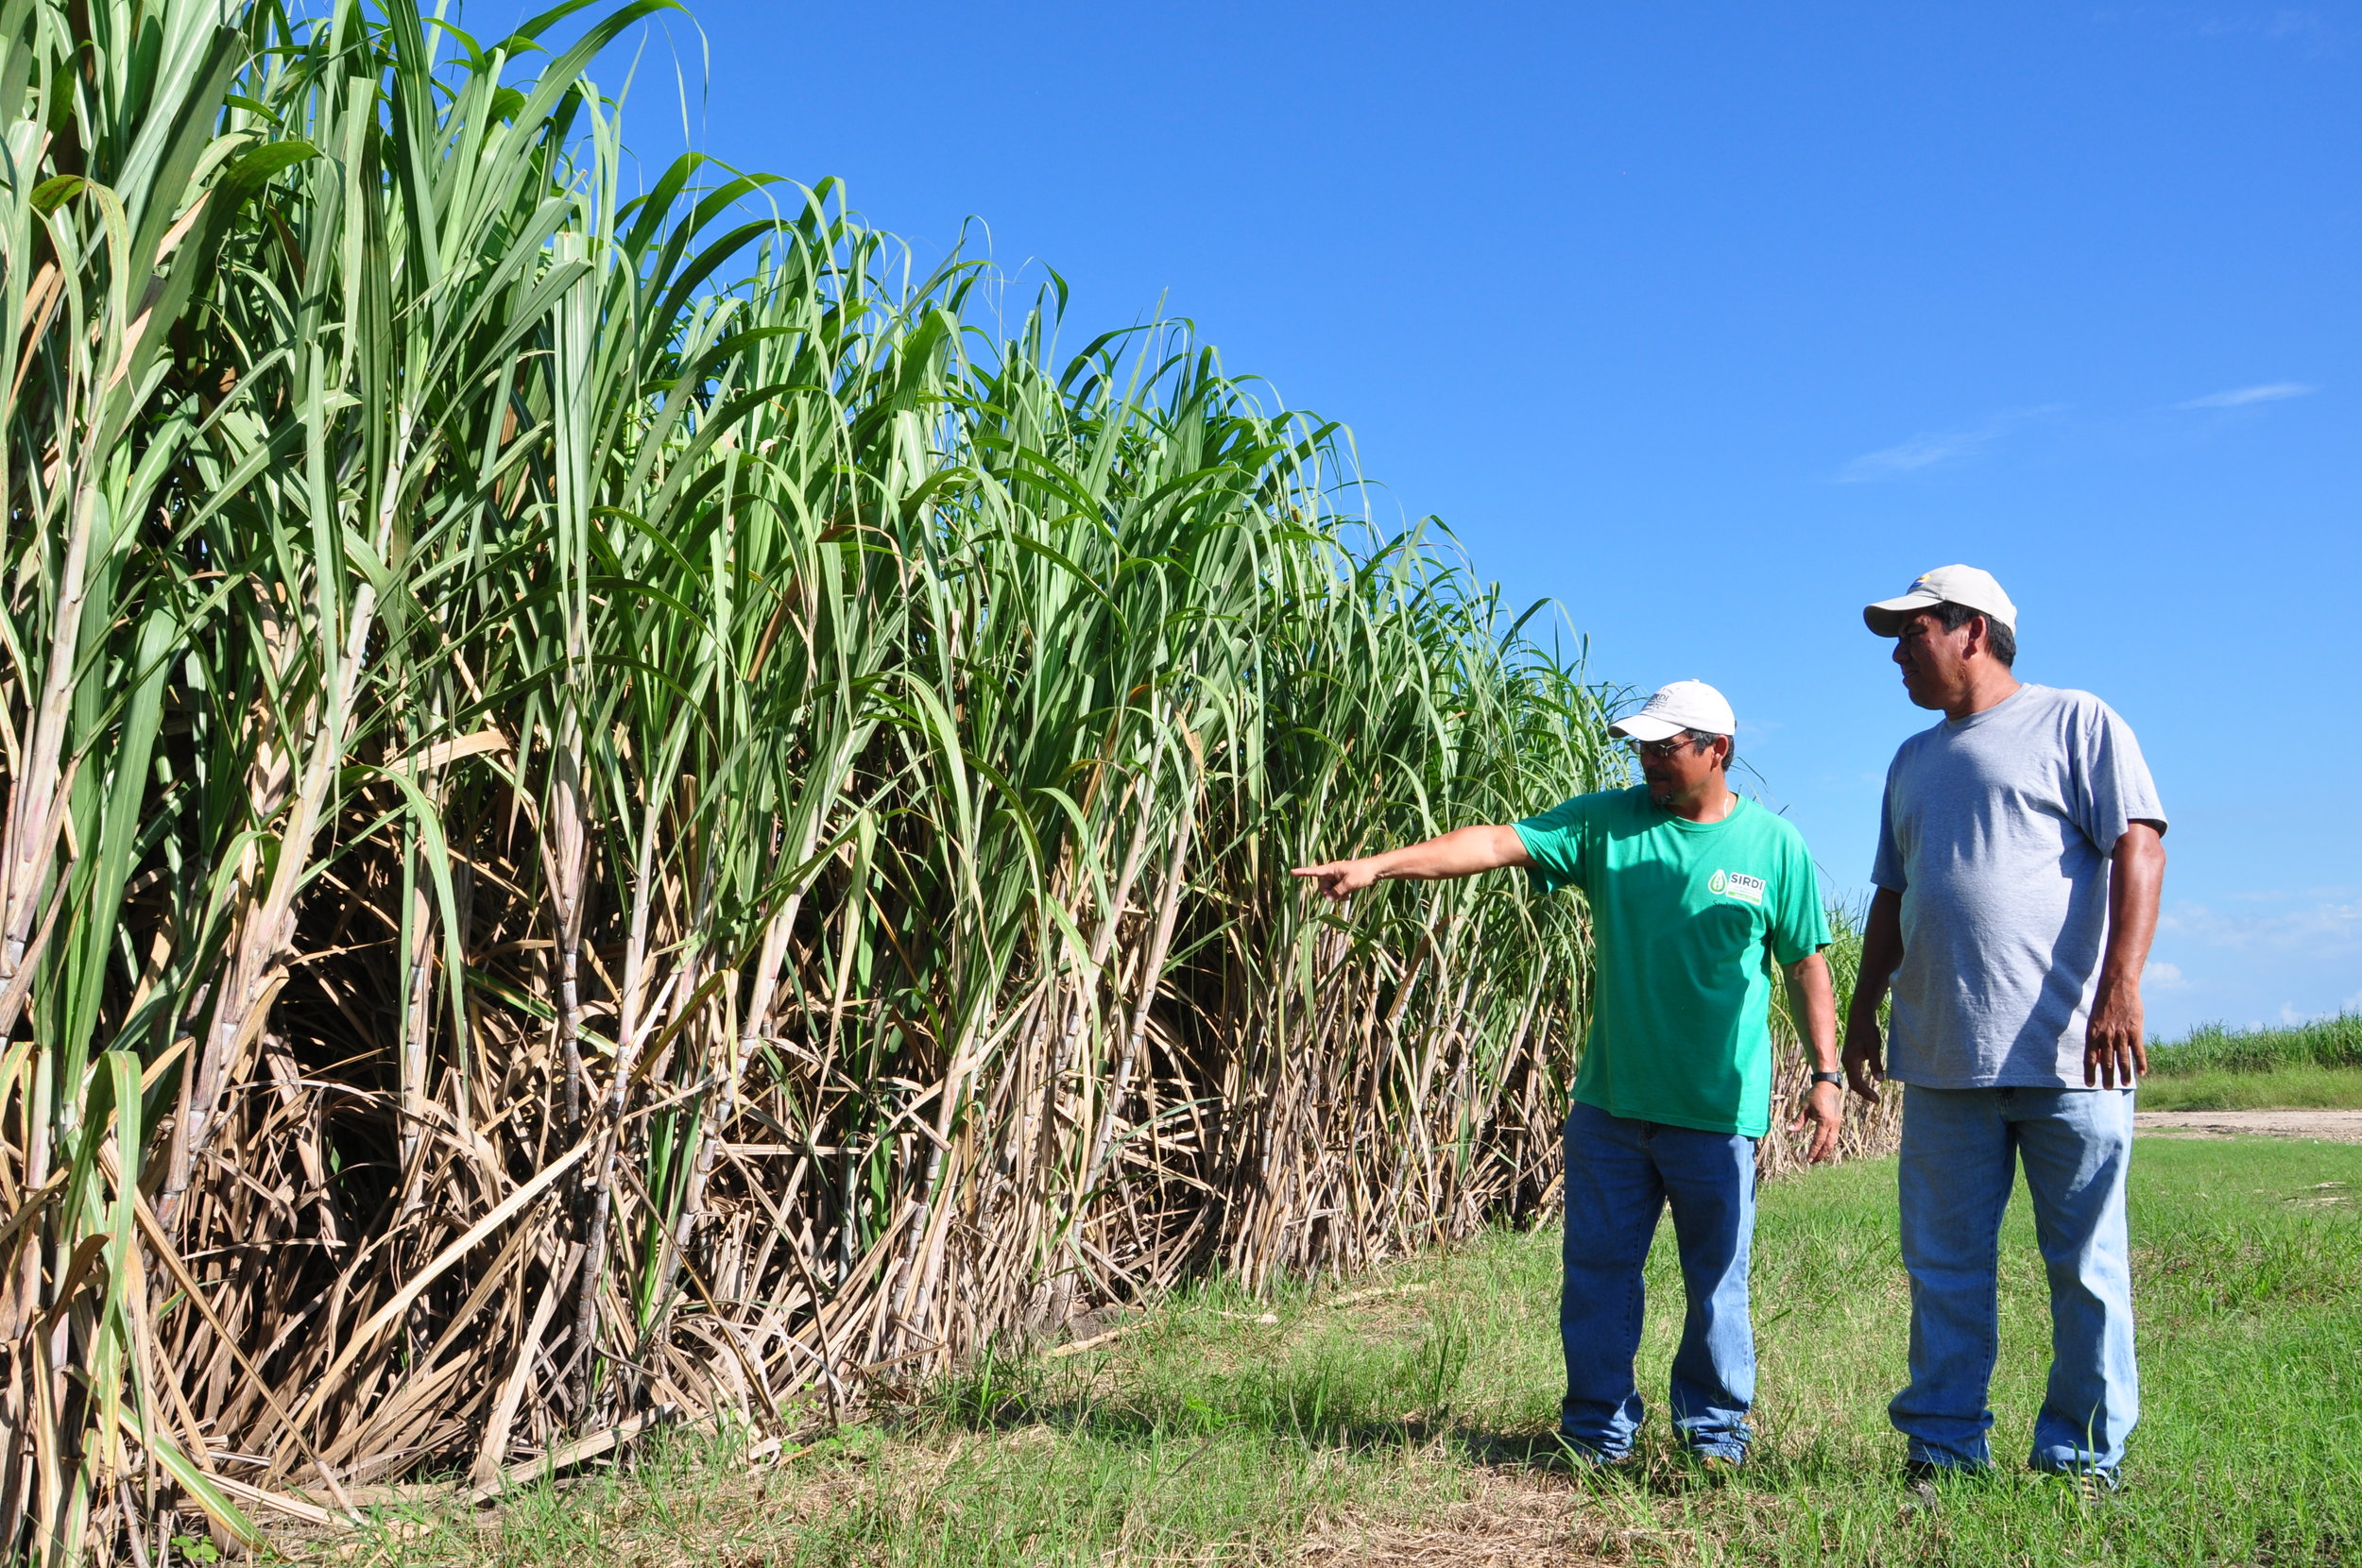 Growers inspecting the cane in Belize